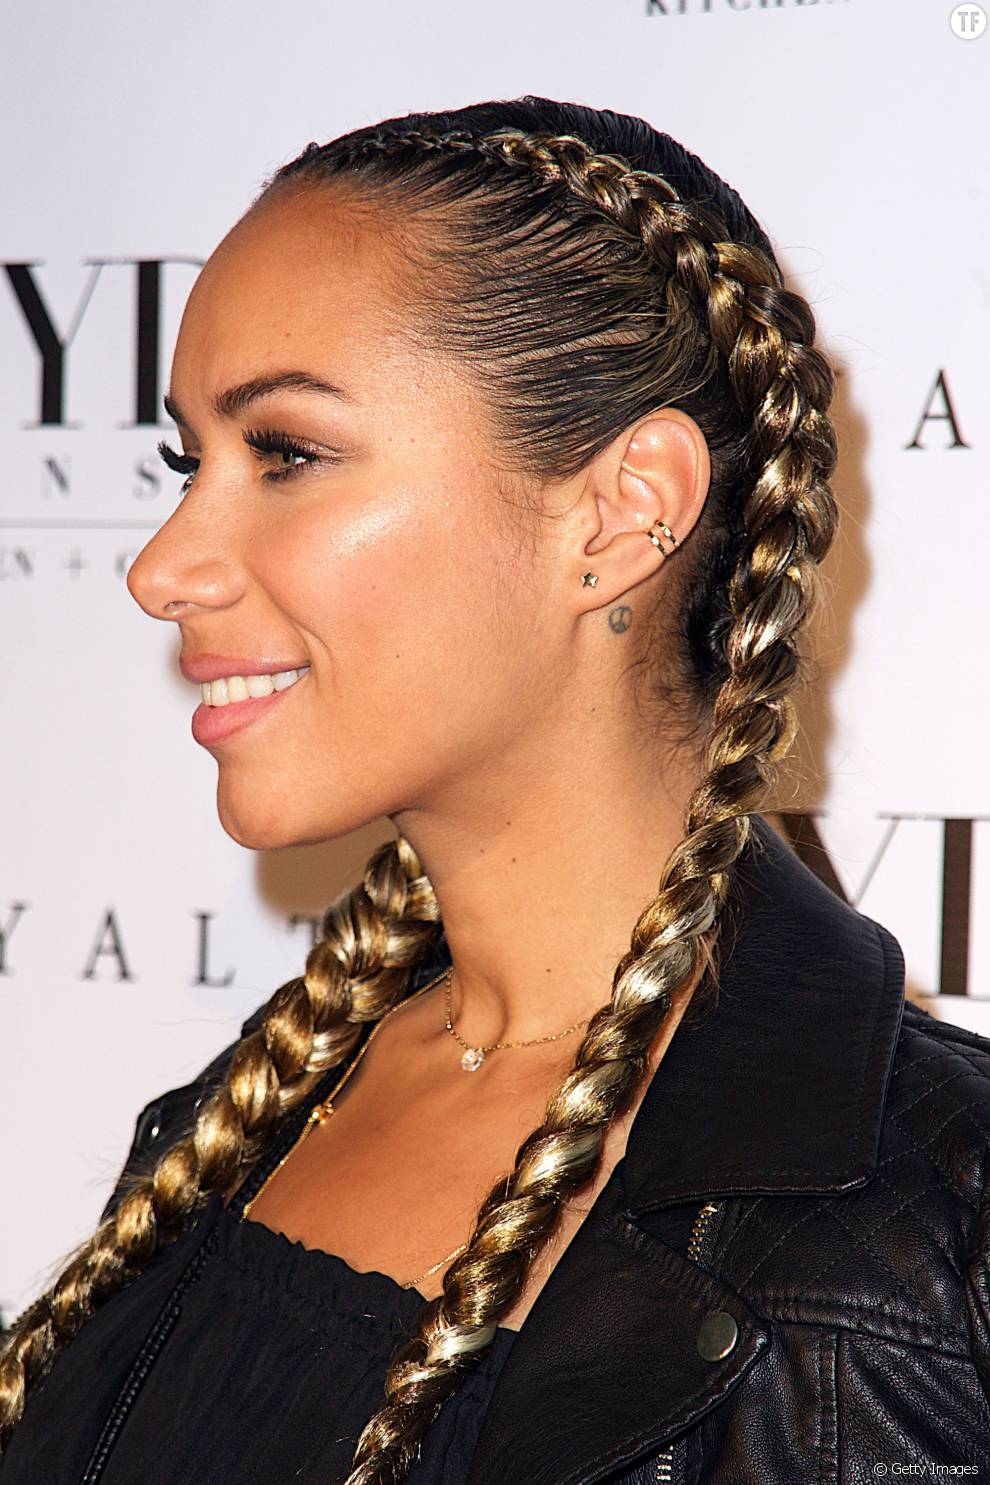 Summer Hairstyle Inspo: The Boxer Braids' KNOCKOUT!